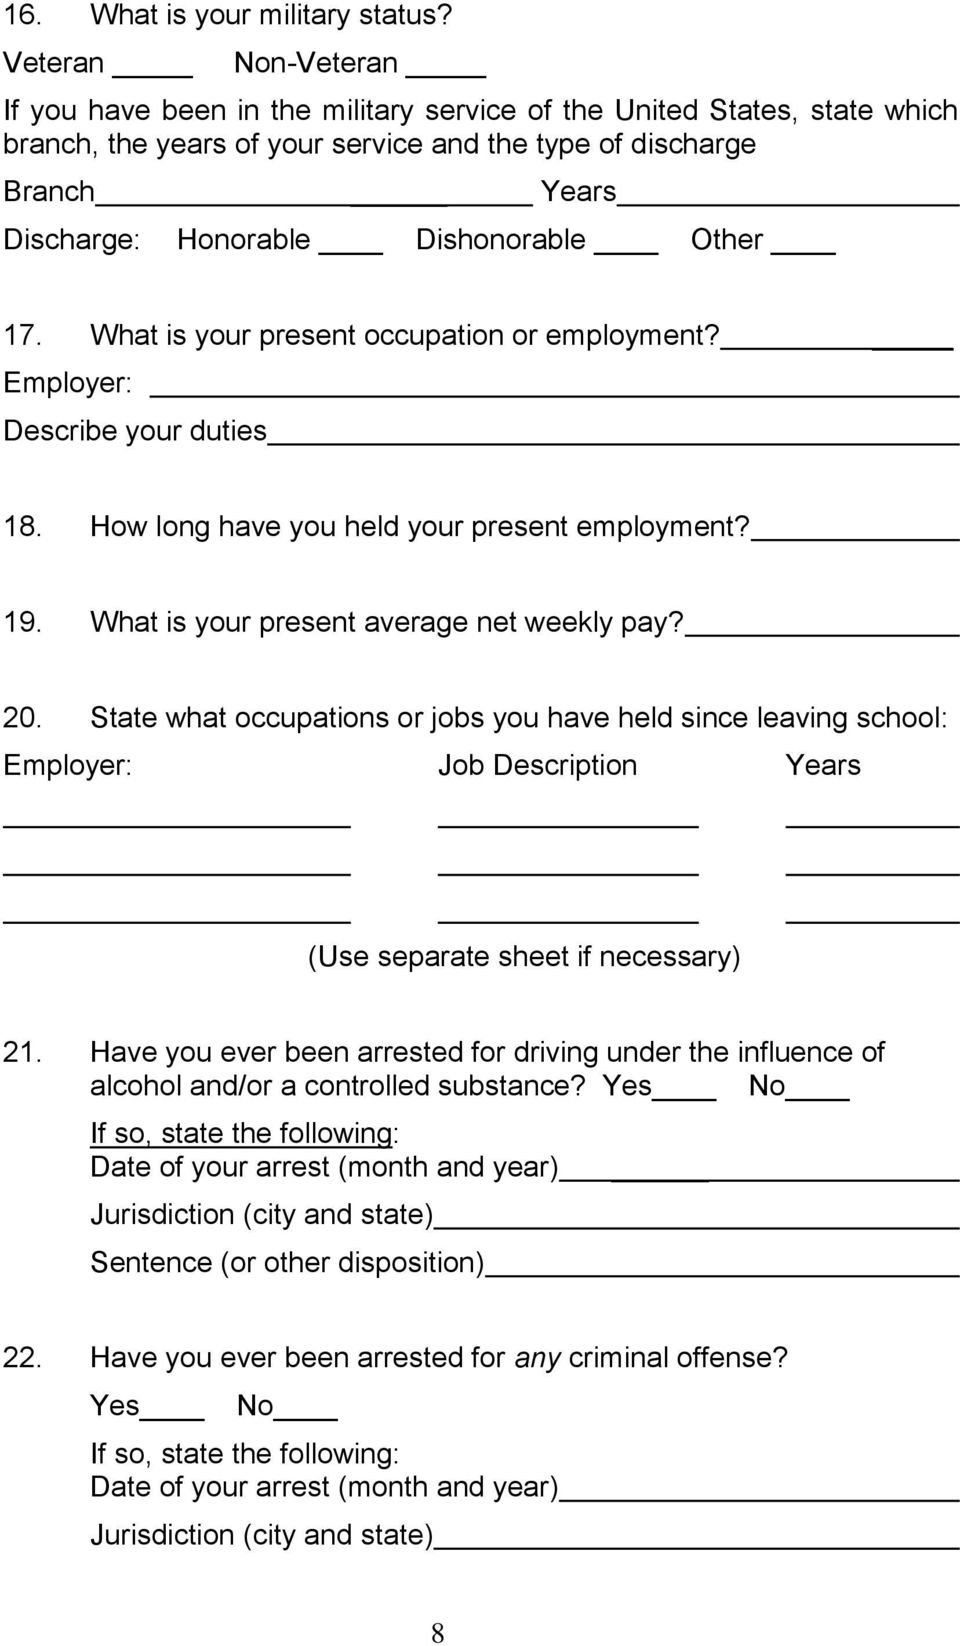 Dishonorable Other 17. What is your present occupation or employment? Employer Describe your duties 18. How long have you held your present employment? 19. What is your present average net weekly pay?